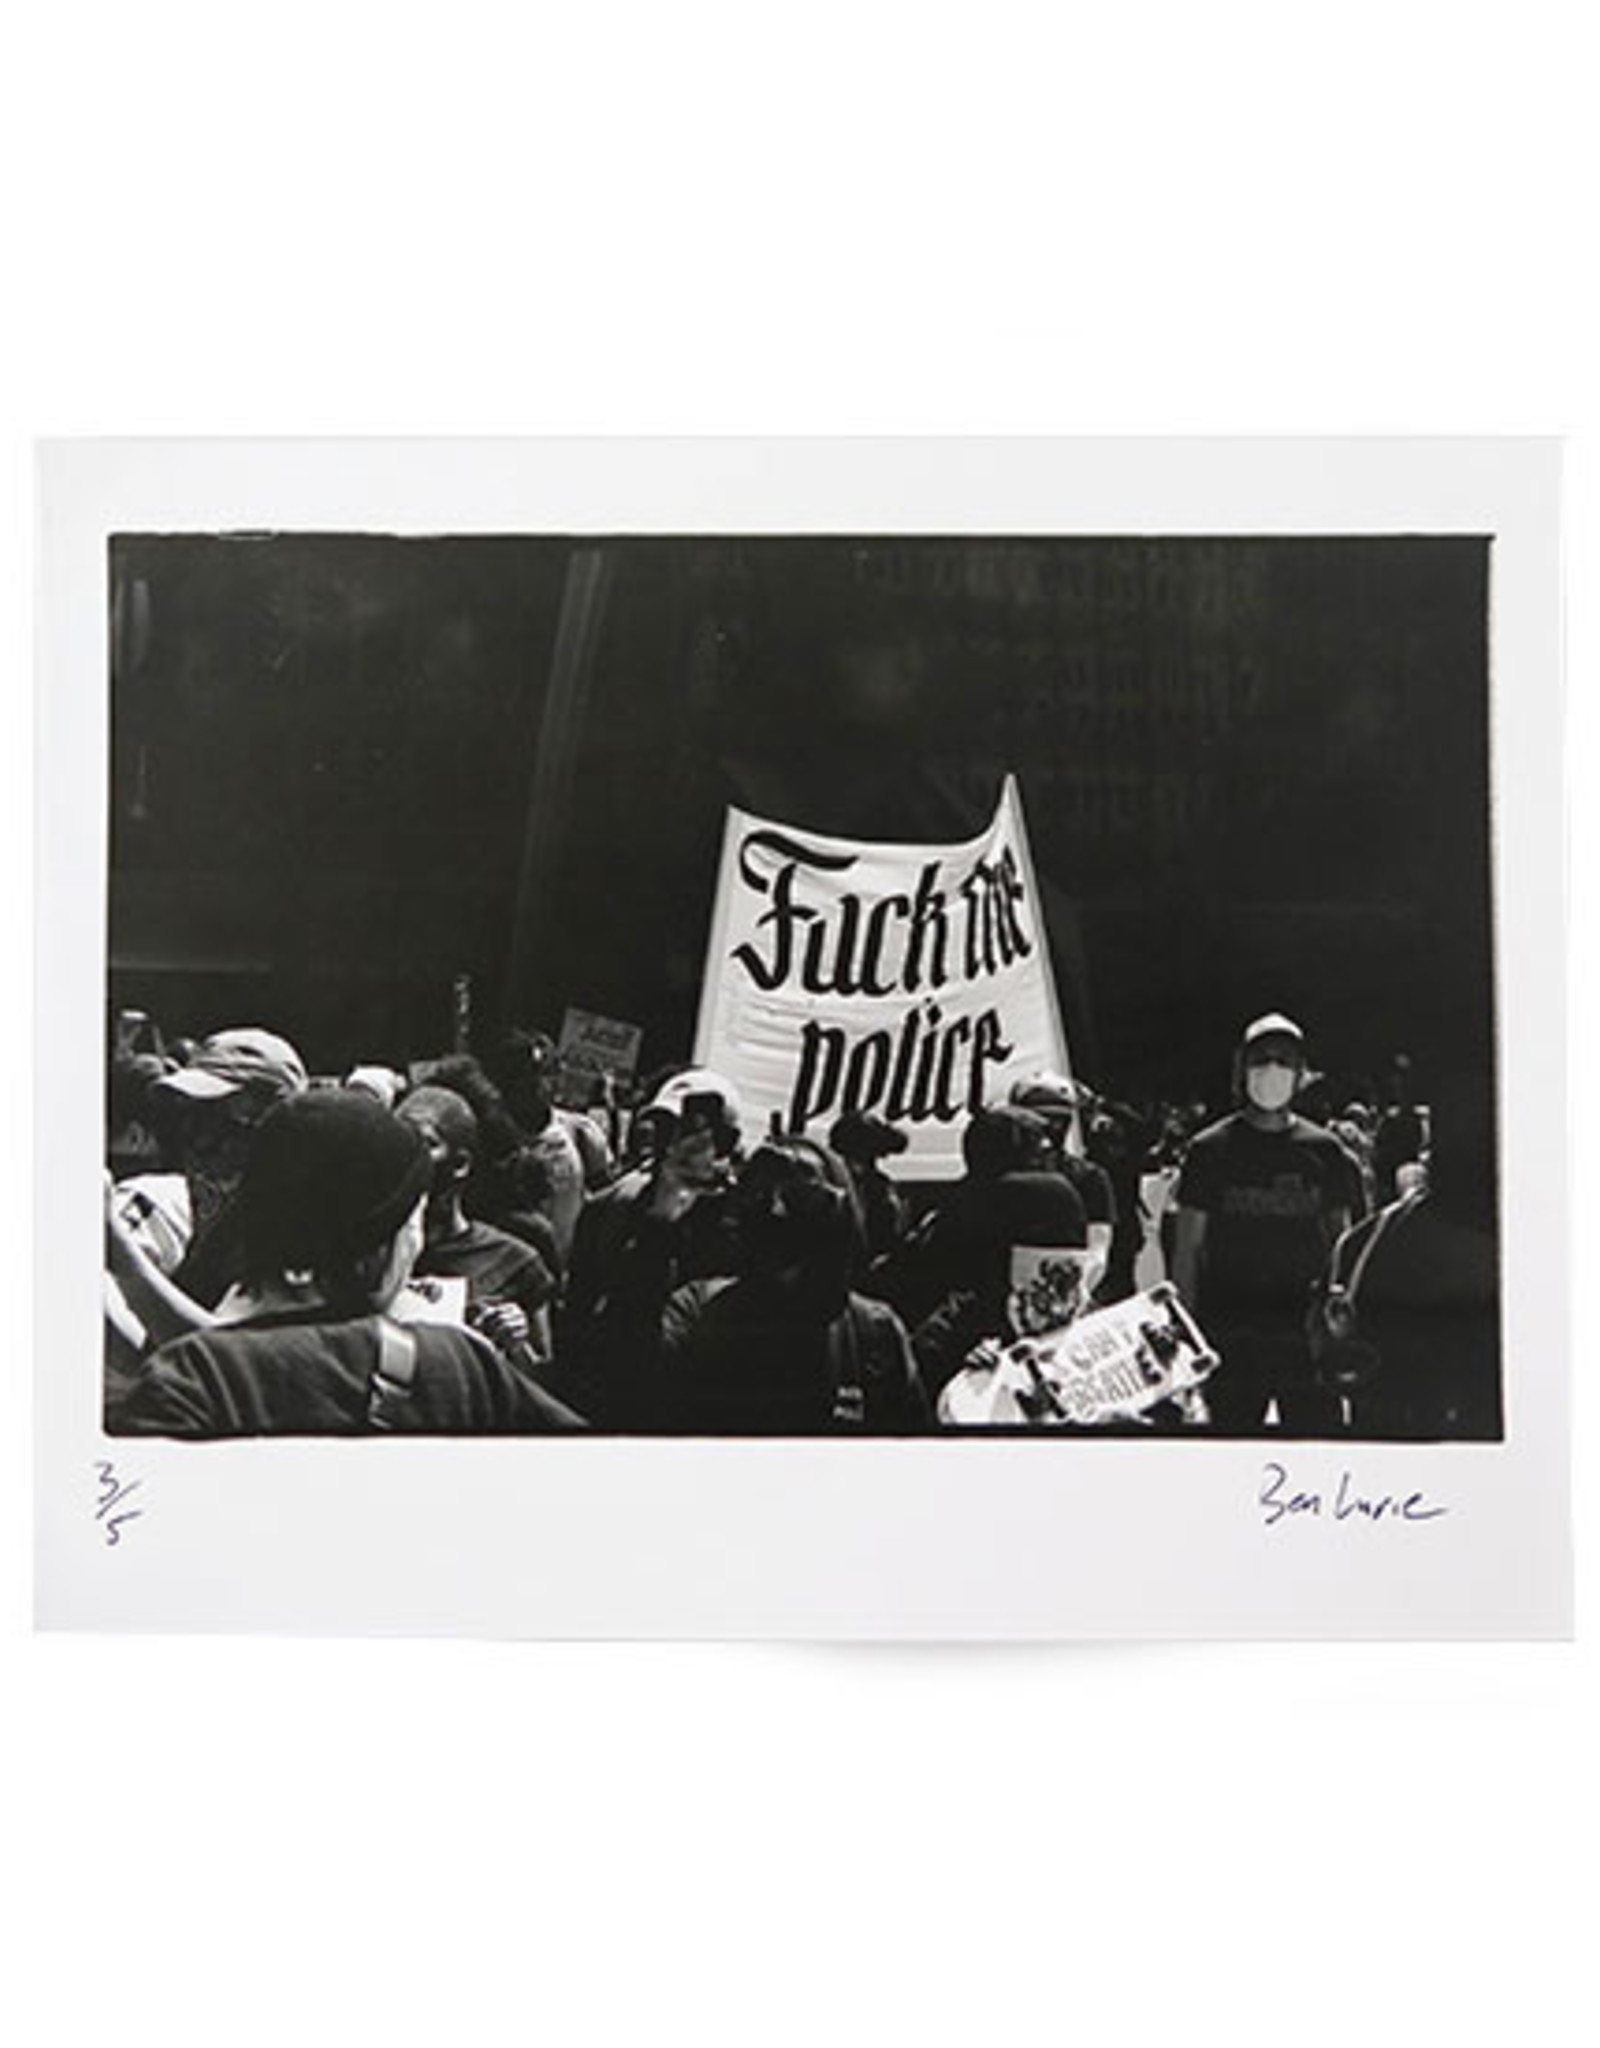 """""""Fuck the police"""" 5/5 silver gelatin print (8"""" x 10"""") by Ben Lurie"""